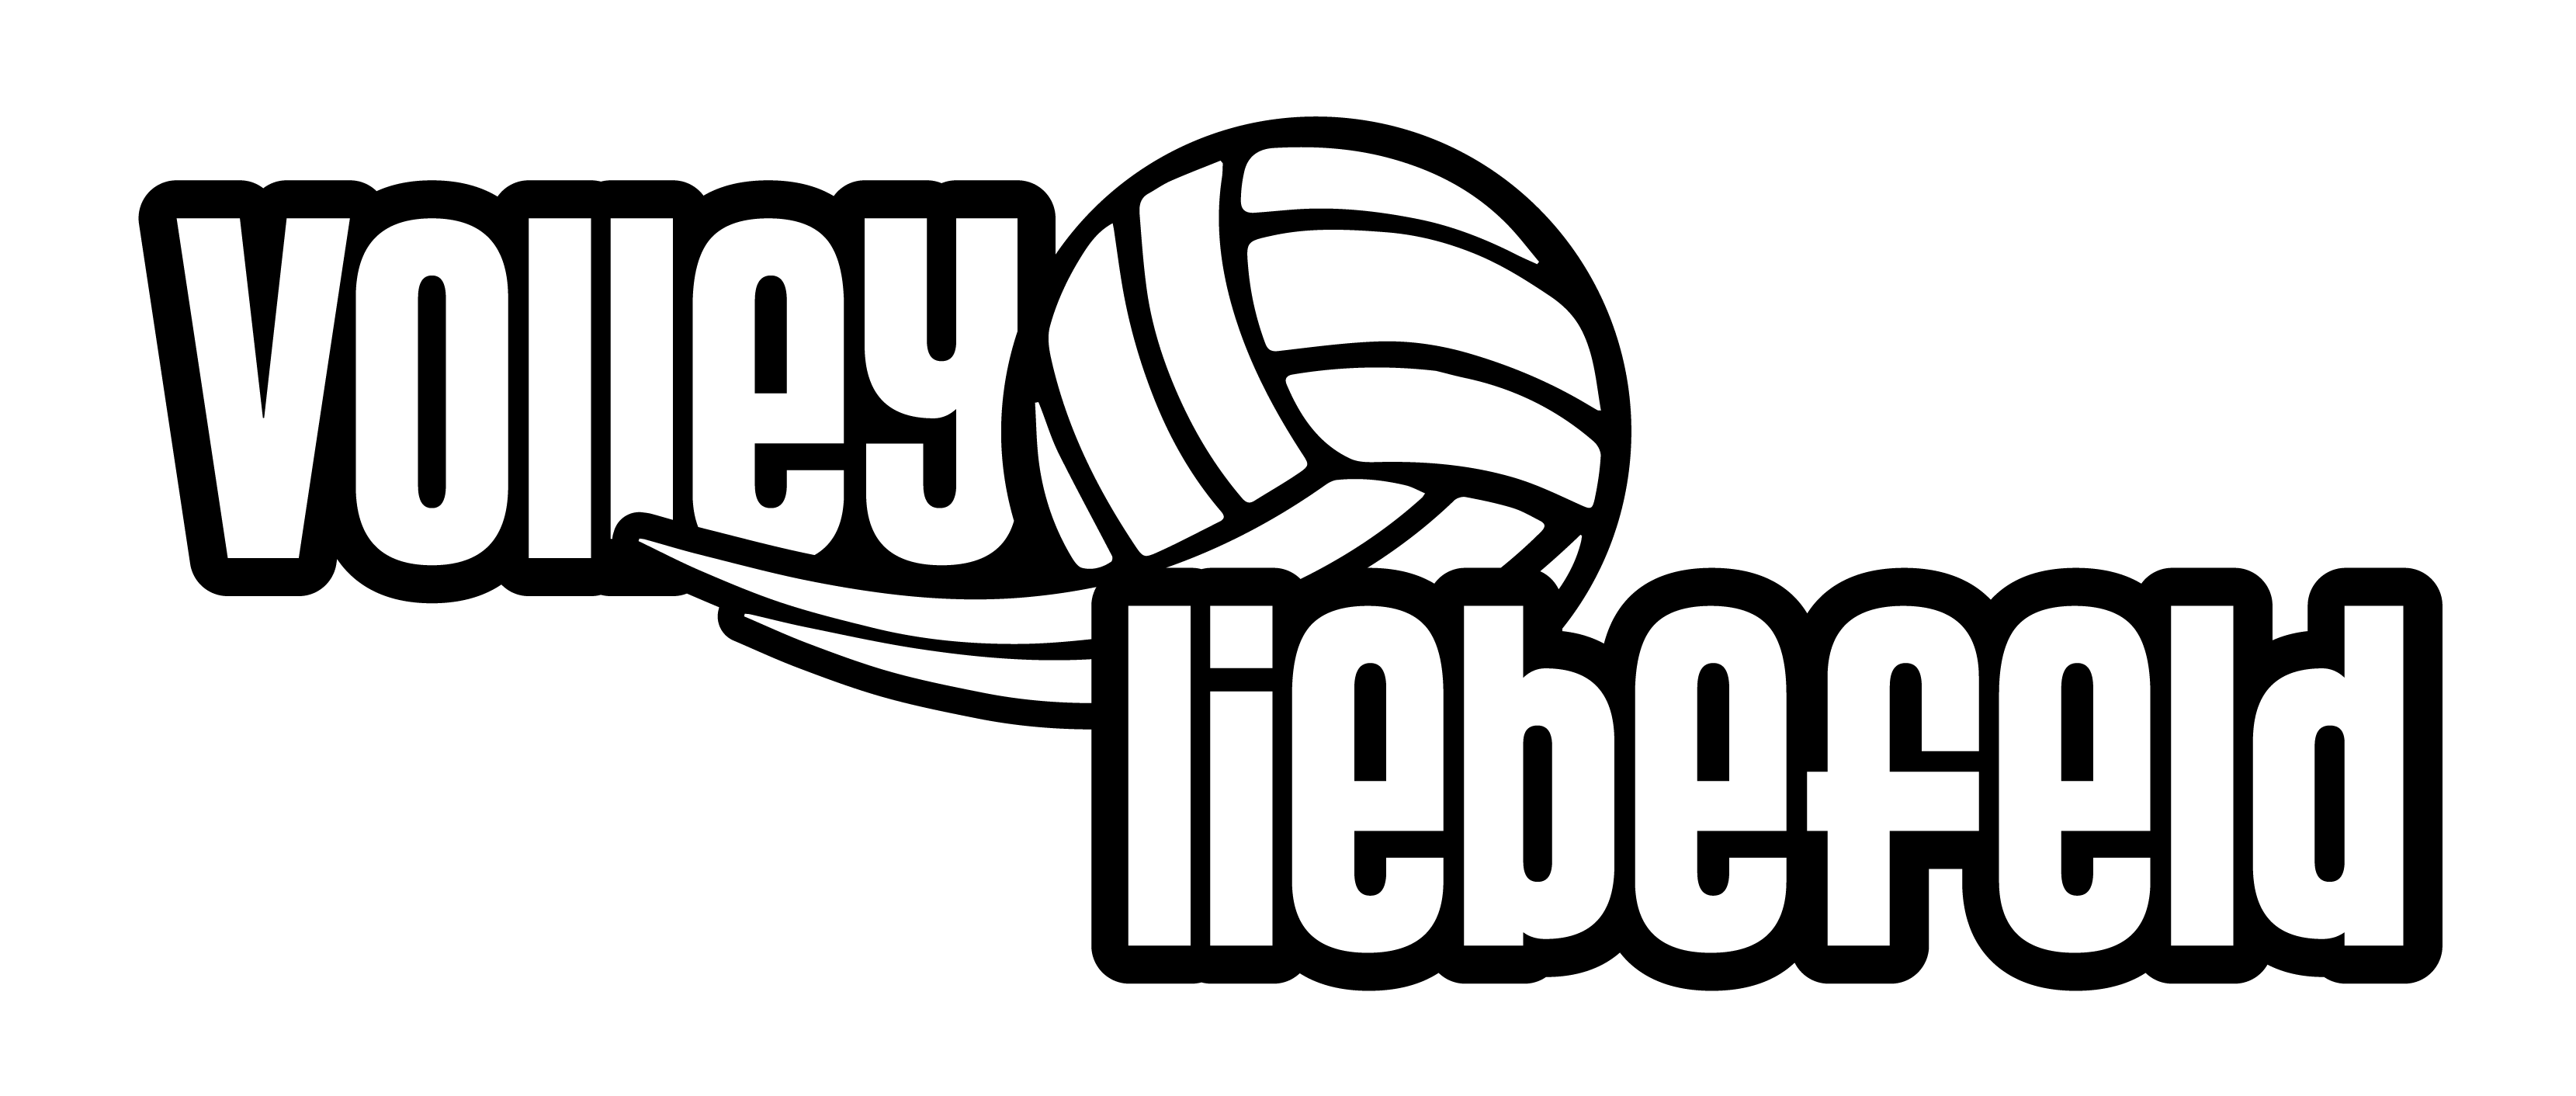 volleyliebefeld